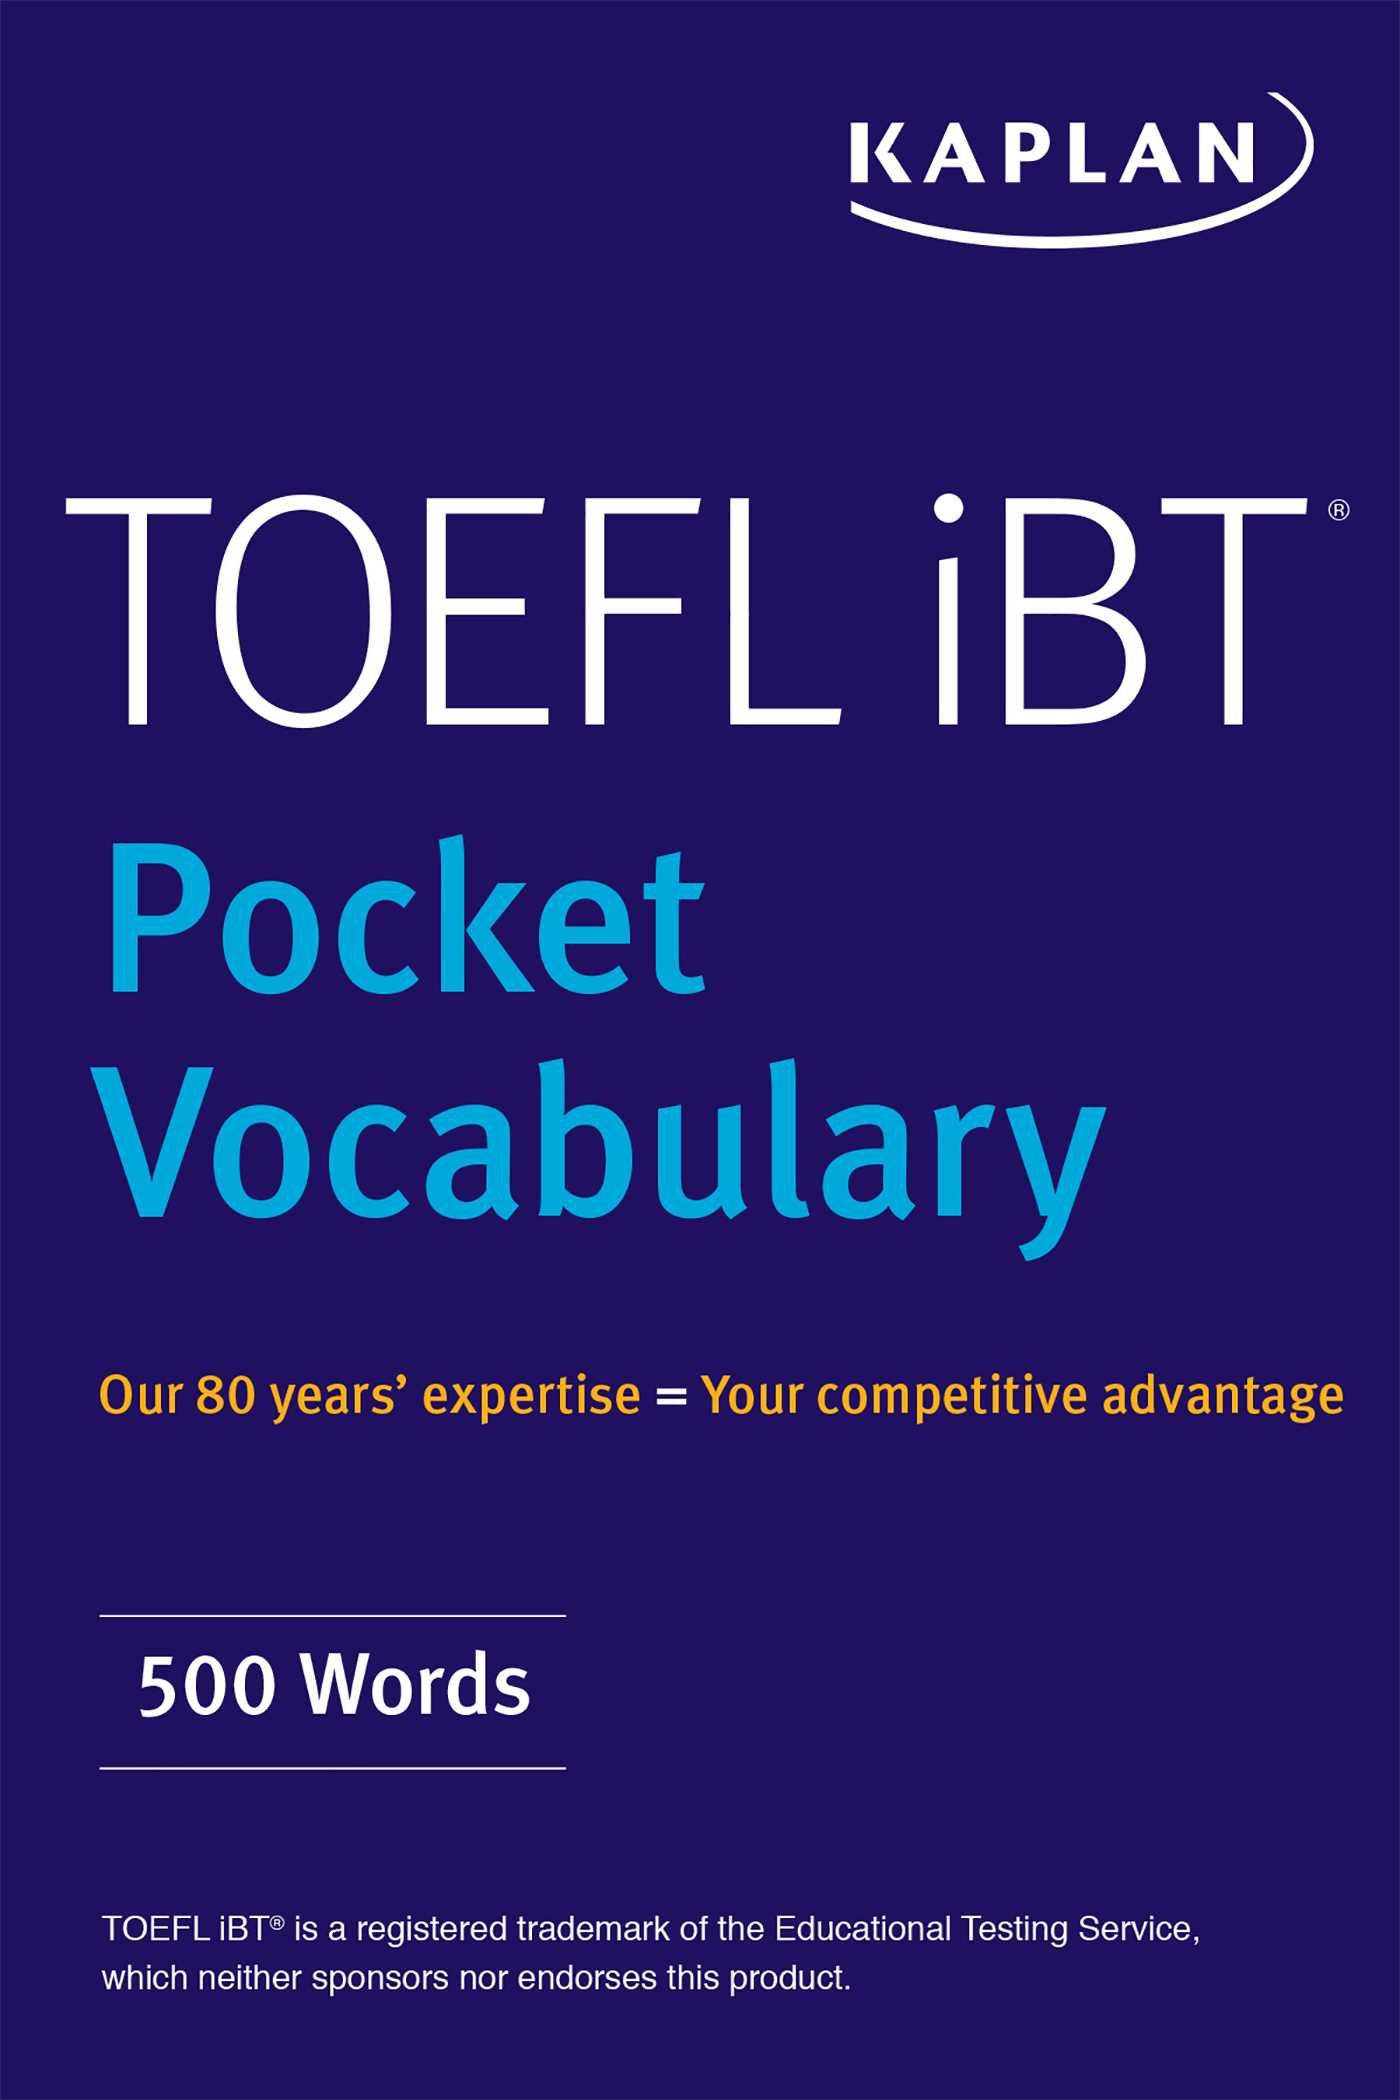 TOEFL Pocket Vocabulary: 600 Words + 420 Idioms + Practice Questions by Kaplan Publishing